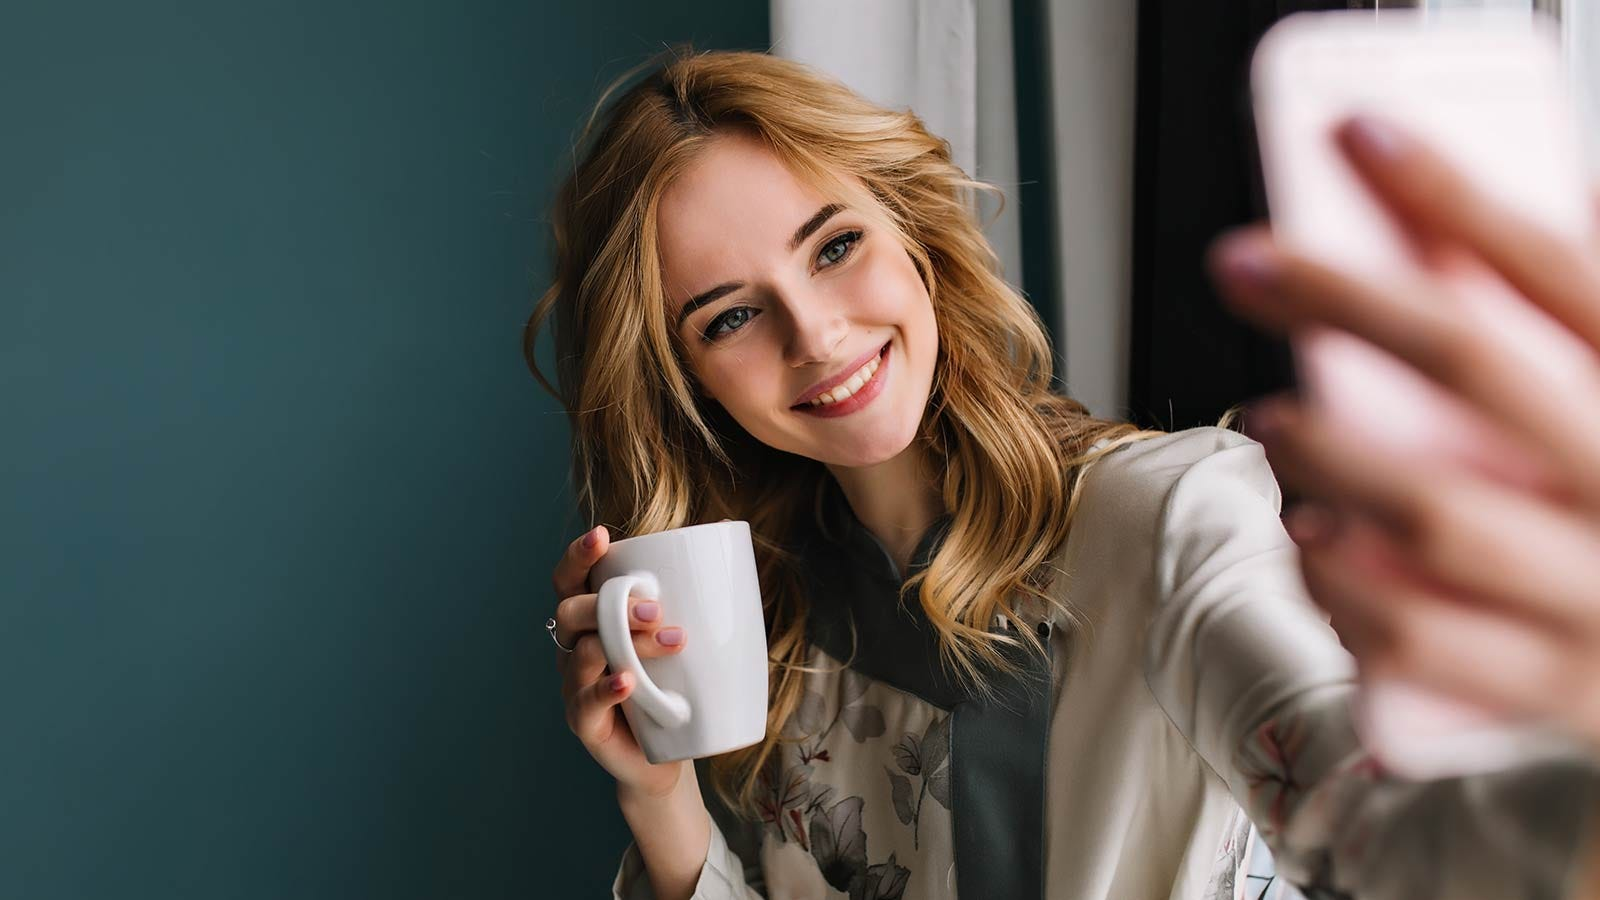 A young woman holding a coffee mug and taking a selfie with her phone.